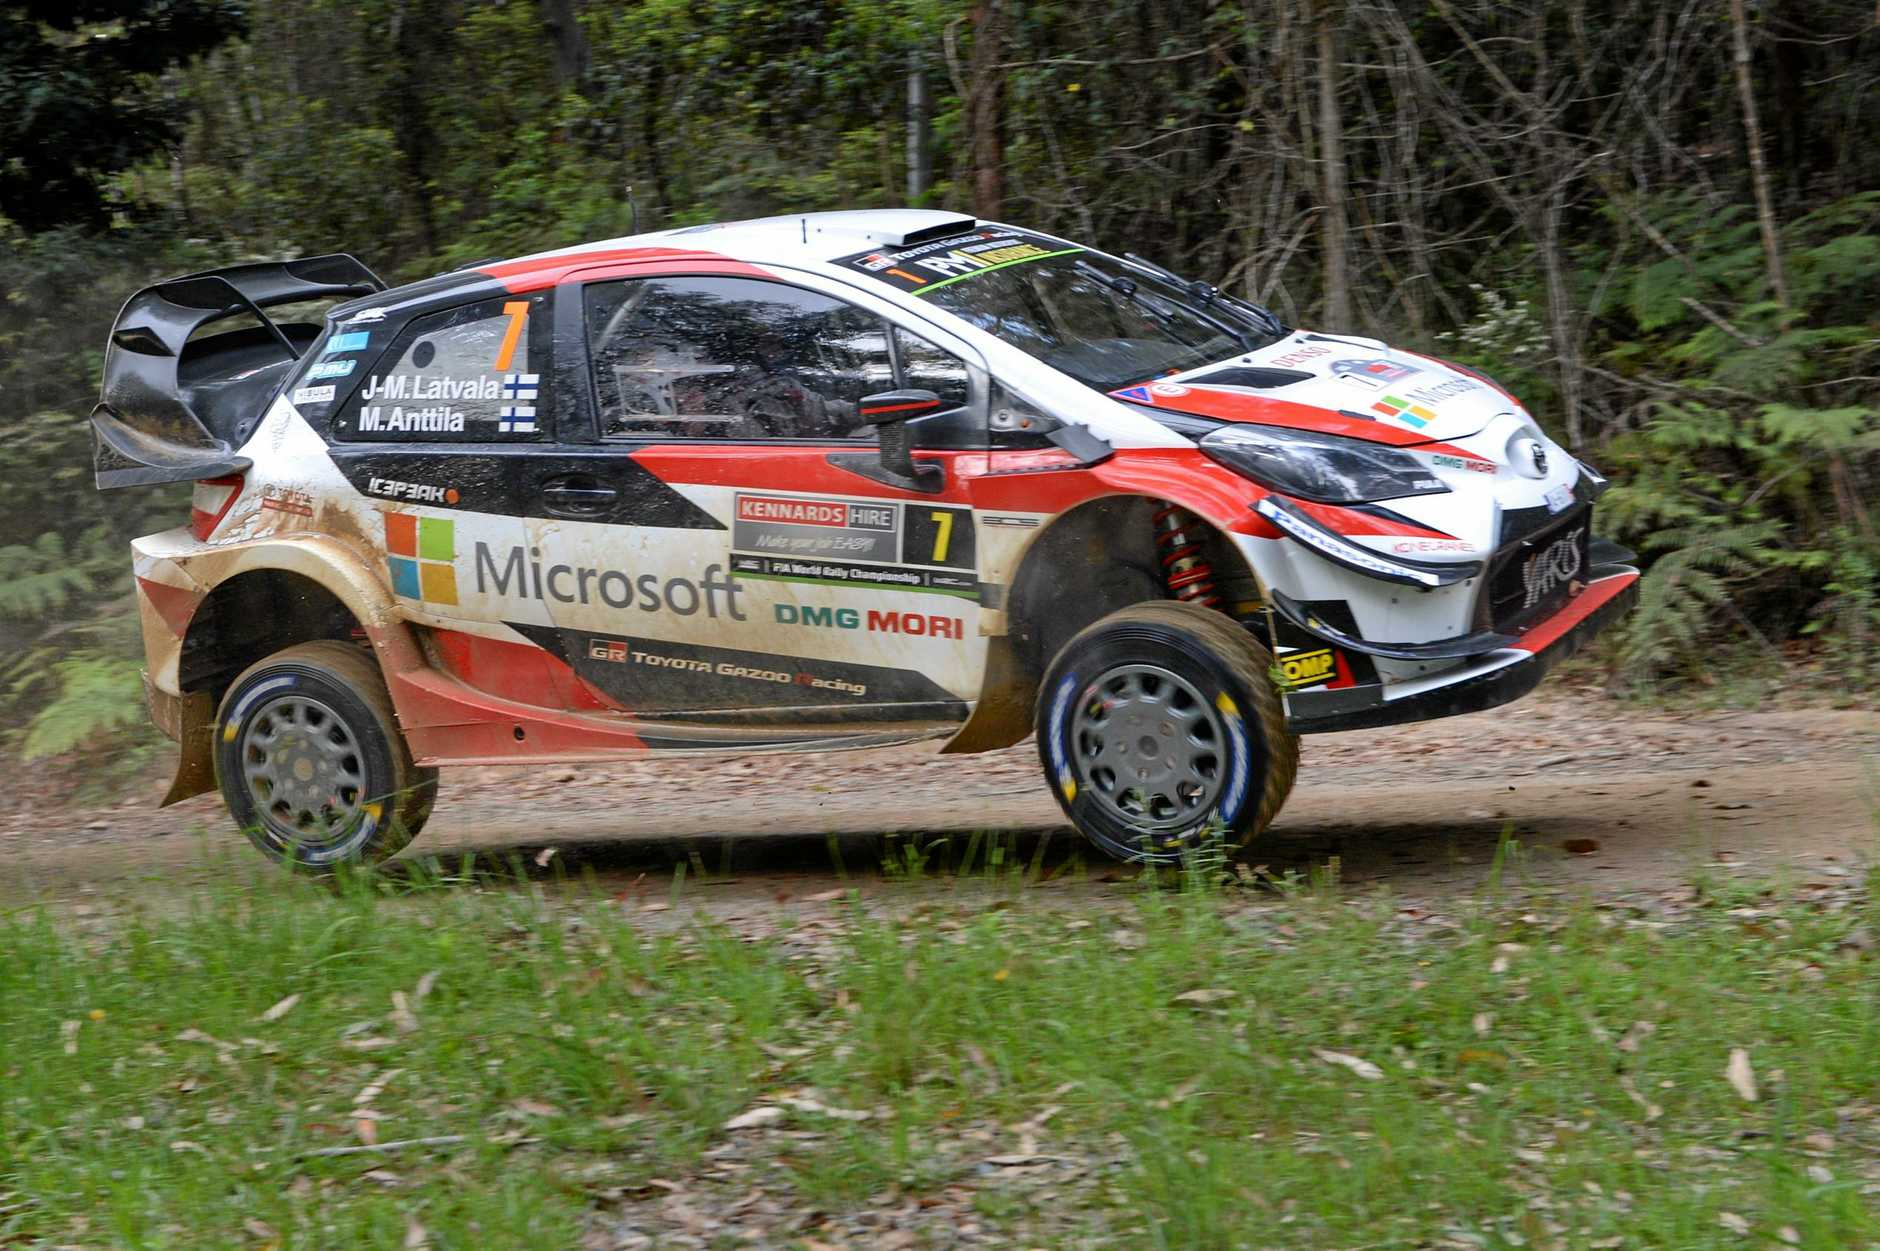 Jari-Matti Latvala on his way to winning Rally Australia in a Toyota Yaris.